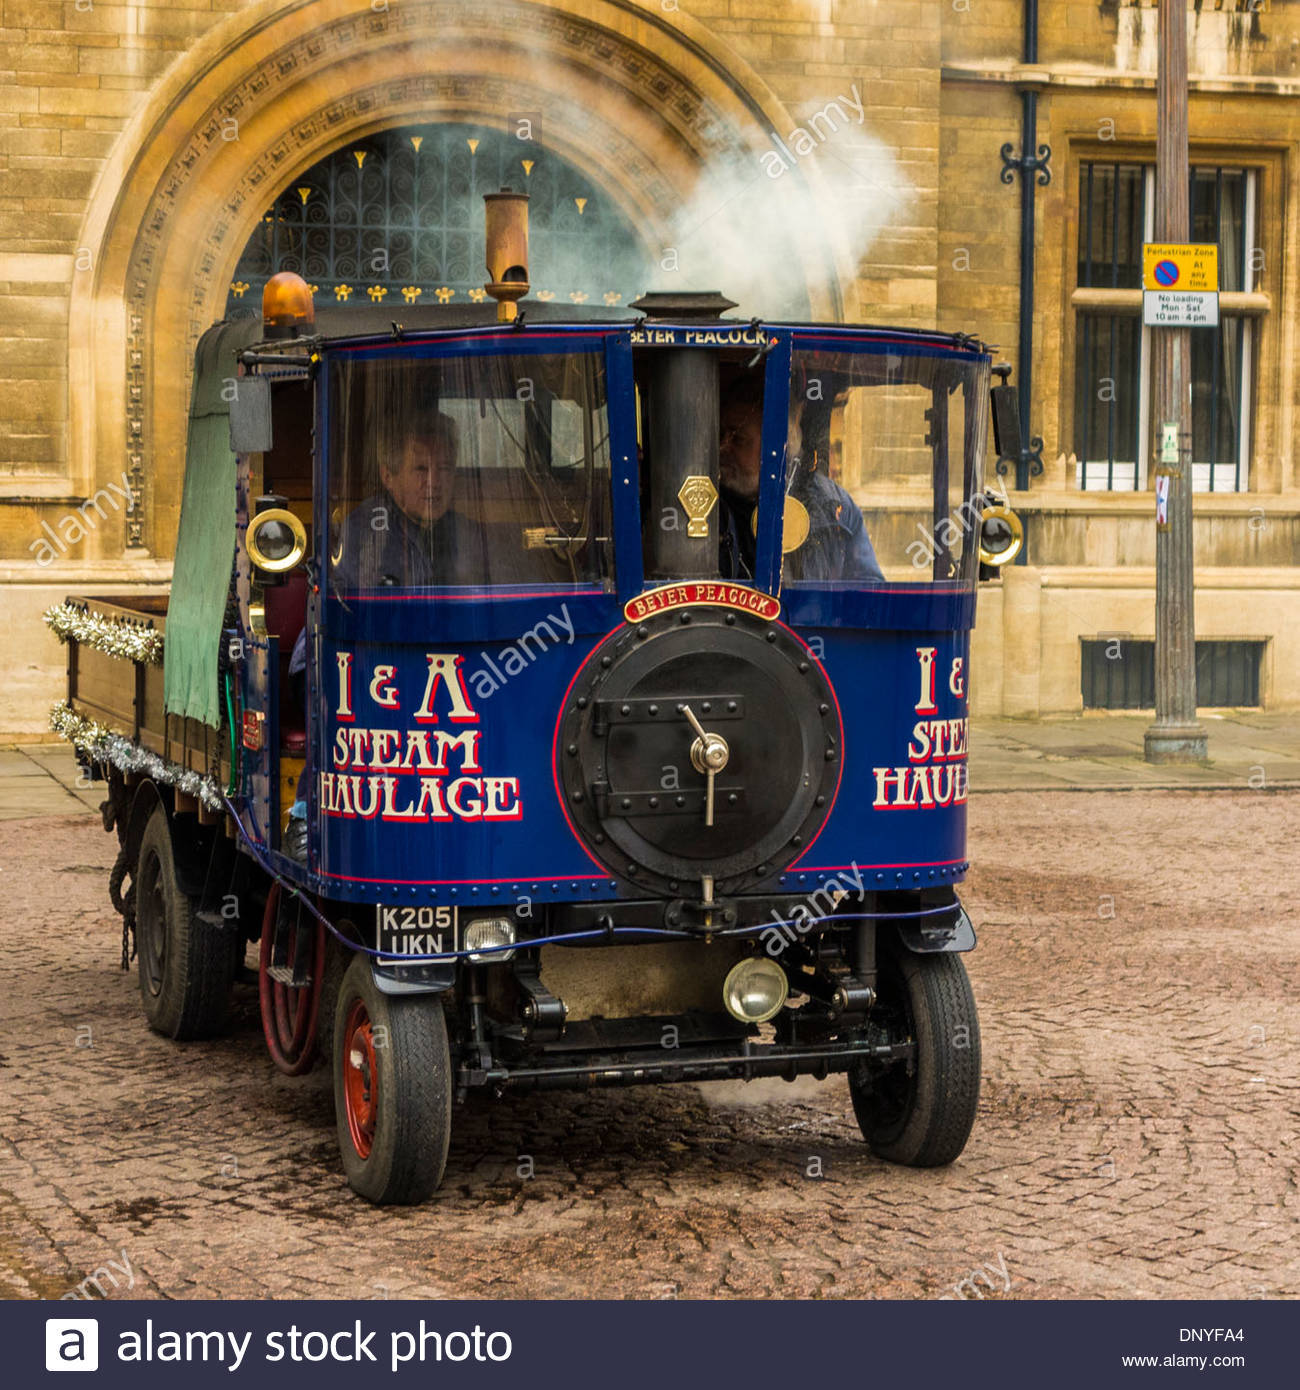 Steam haulage truck in Kings Parade, Cambridge, England, UK - Stock Image